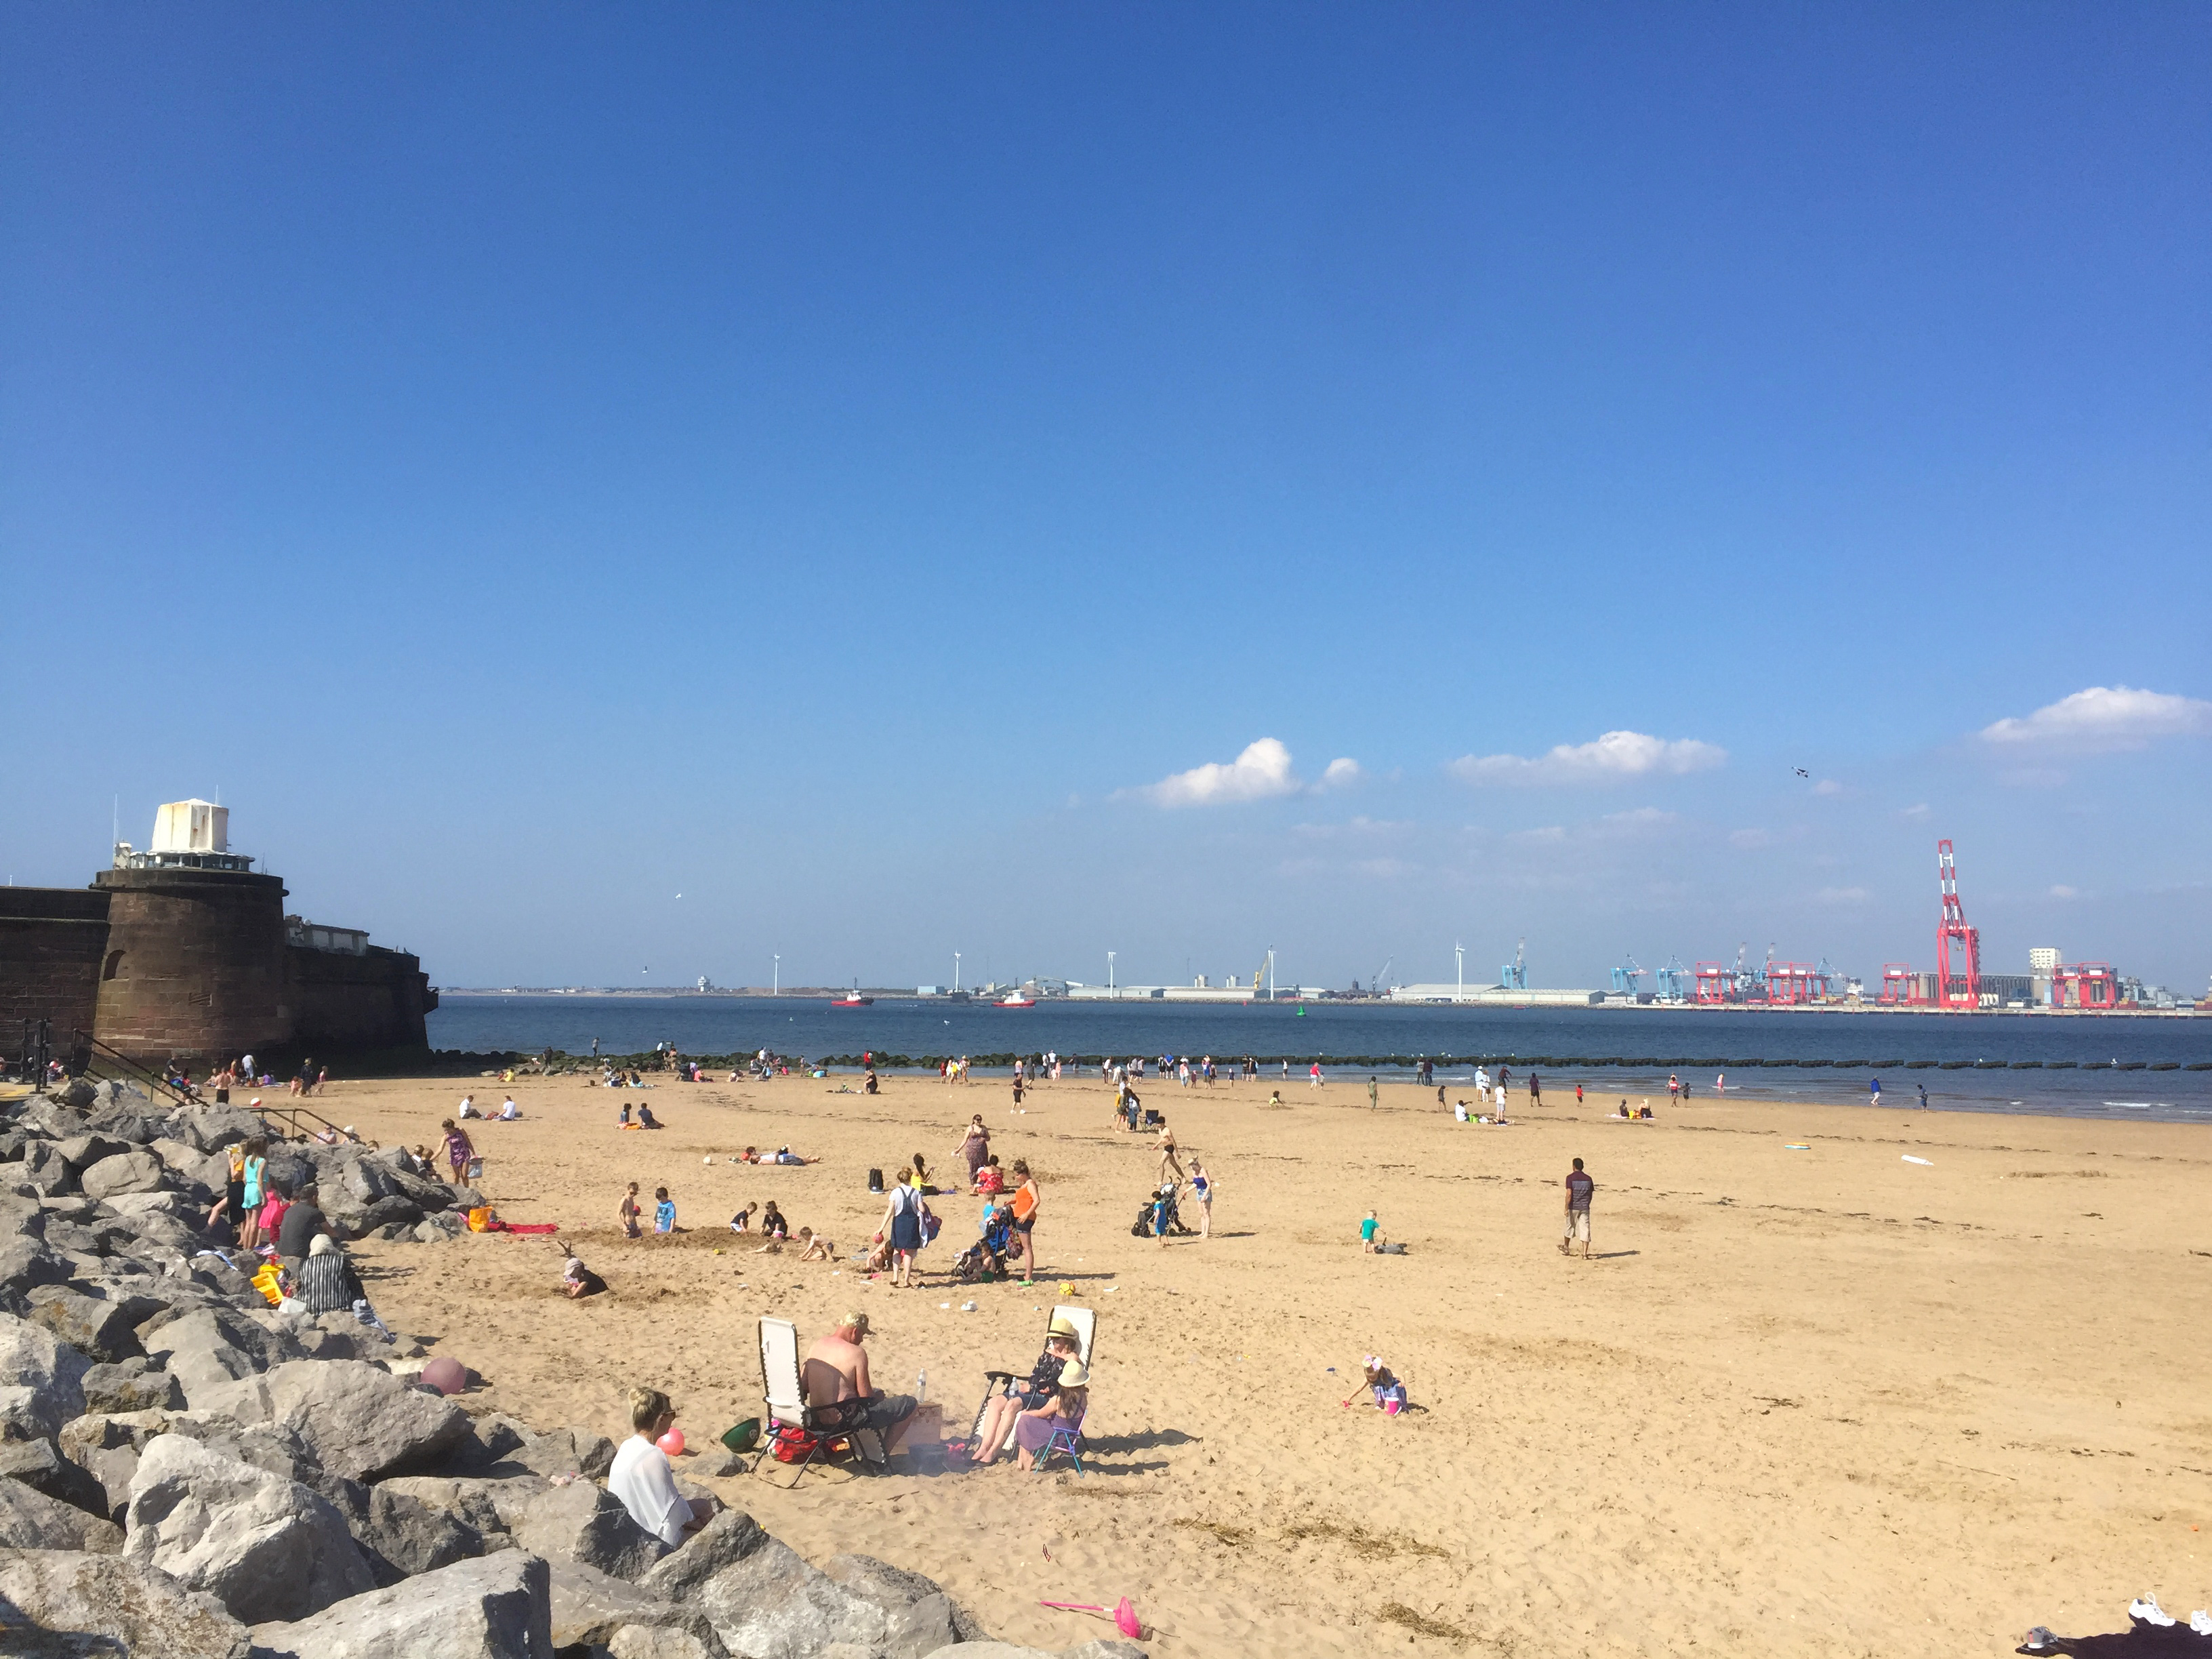 Blue sky overhead with Fort Perch Rock in the distance,rocks on the left and to the right an expanse of sand busy with people and a glimpse of the sea